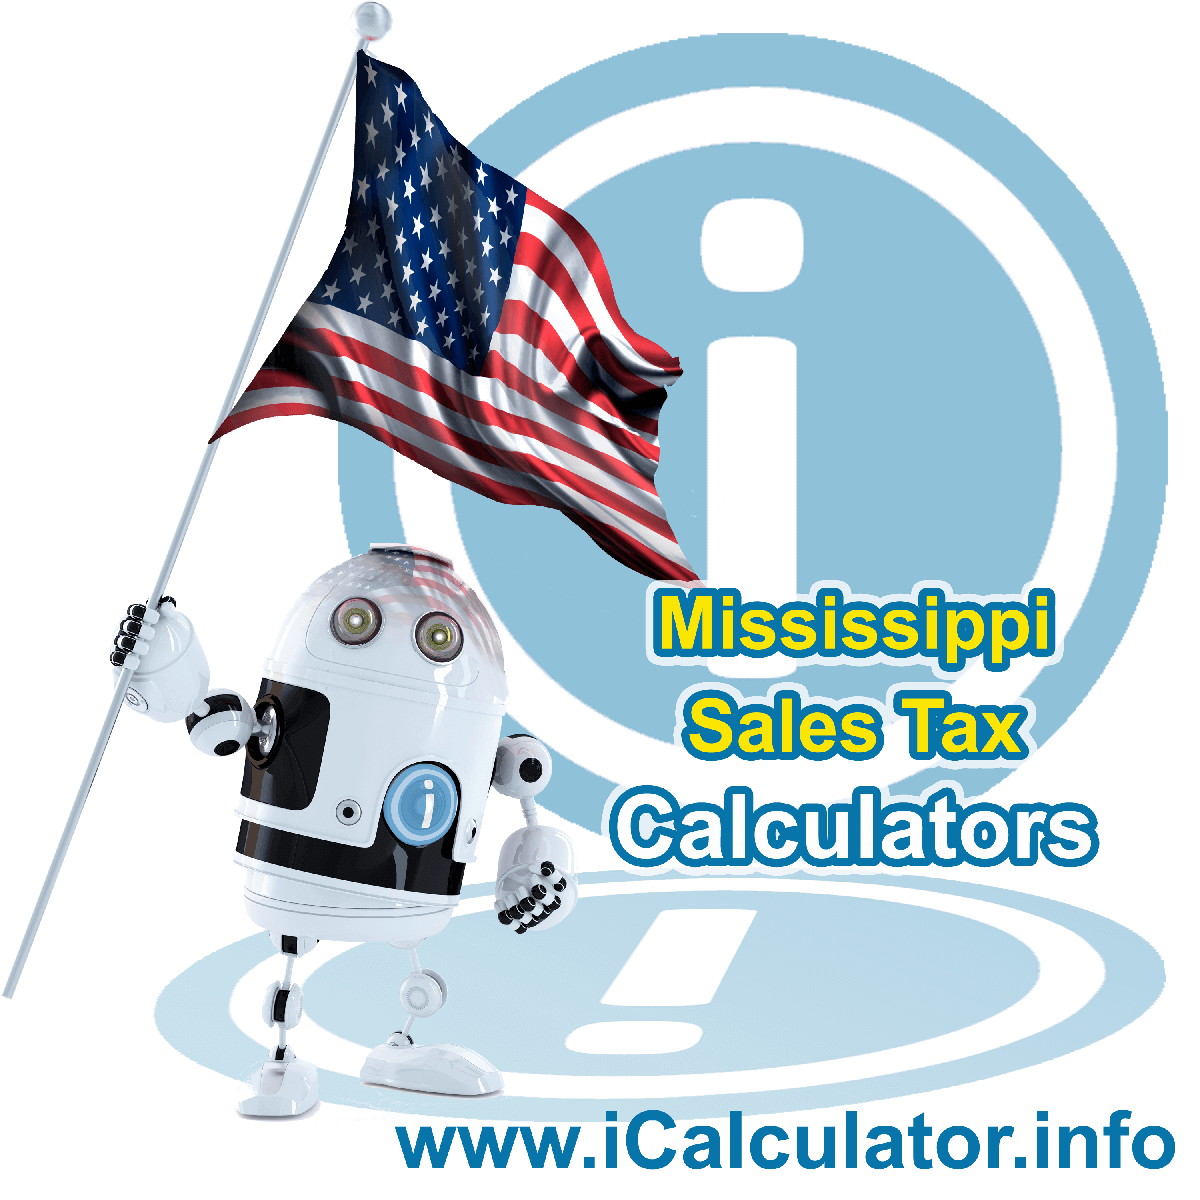 Mississippi Sales Tax Comparison Calculator: This image illustrates a calculator robot comparing sales tax in Mississippi manually using the Mississippi Sales Tax Formula. You can use this information to compare Sales Tax manually or use the Mississippi Sales Tax Comparison Calculator to calculate and compare Mississippi sales tax online.